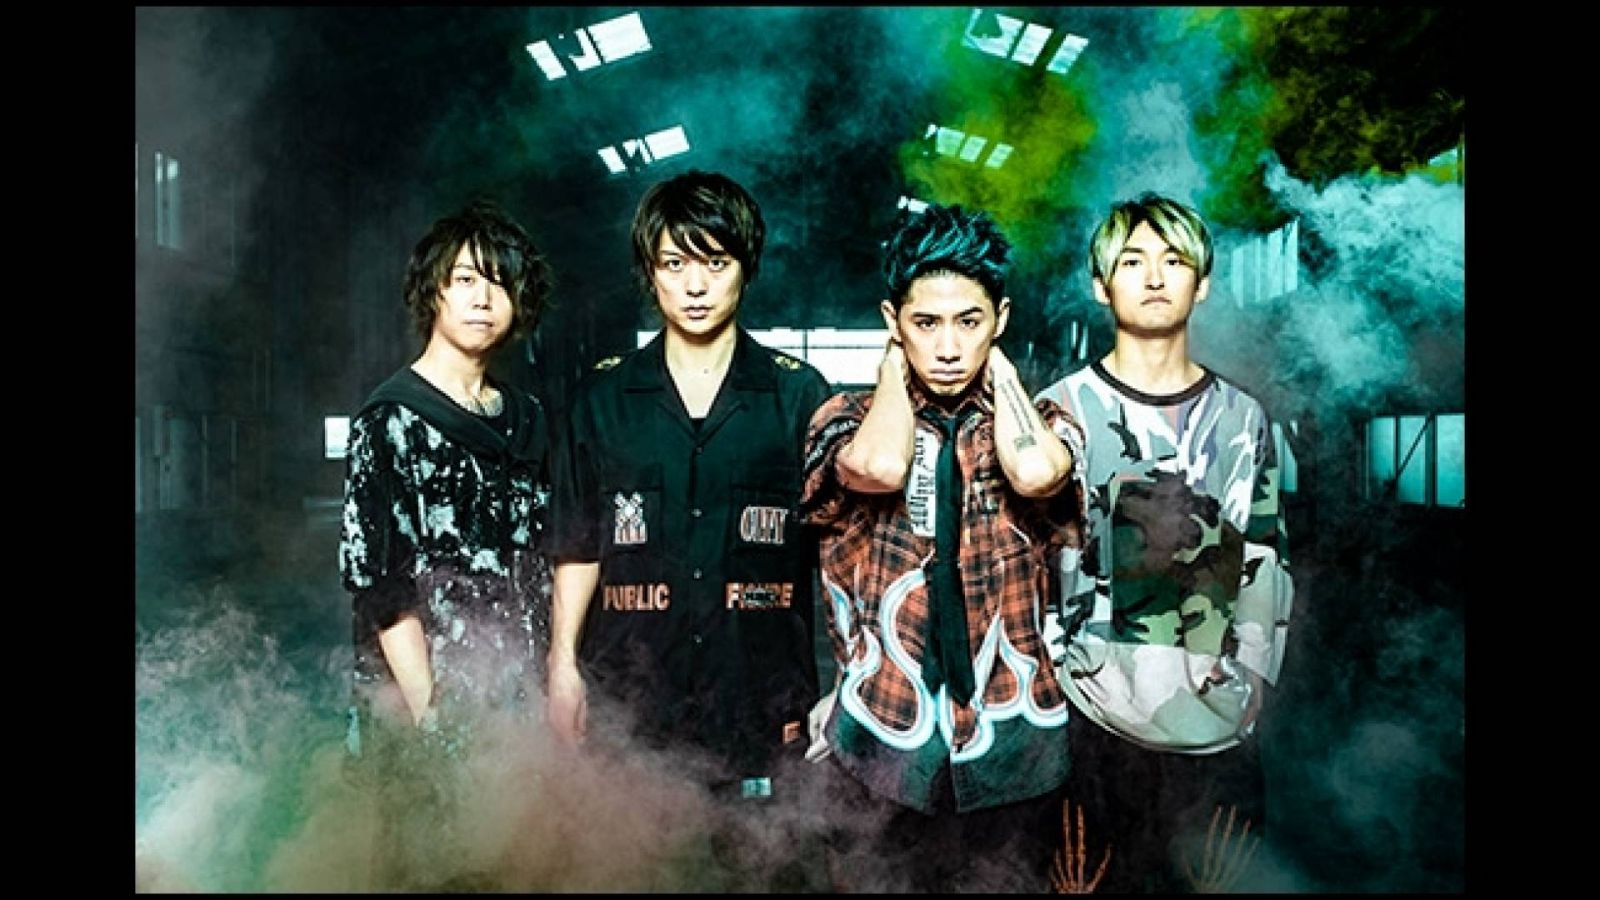 ONE OK ROCK - Eye Of The Storm © AMUSE INC. All Rights Reserved.